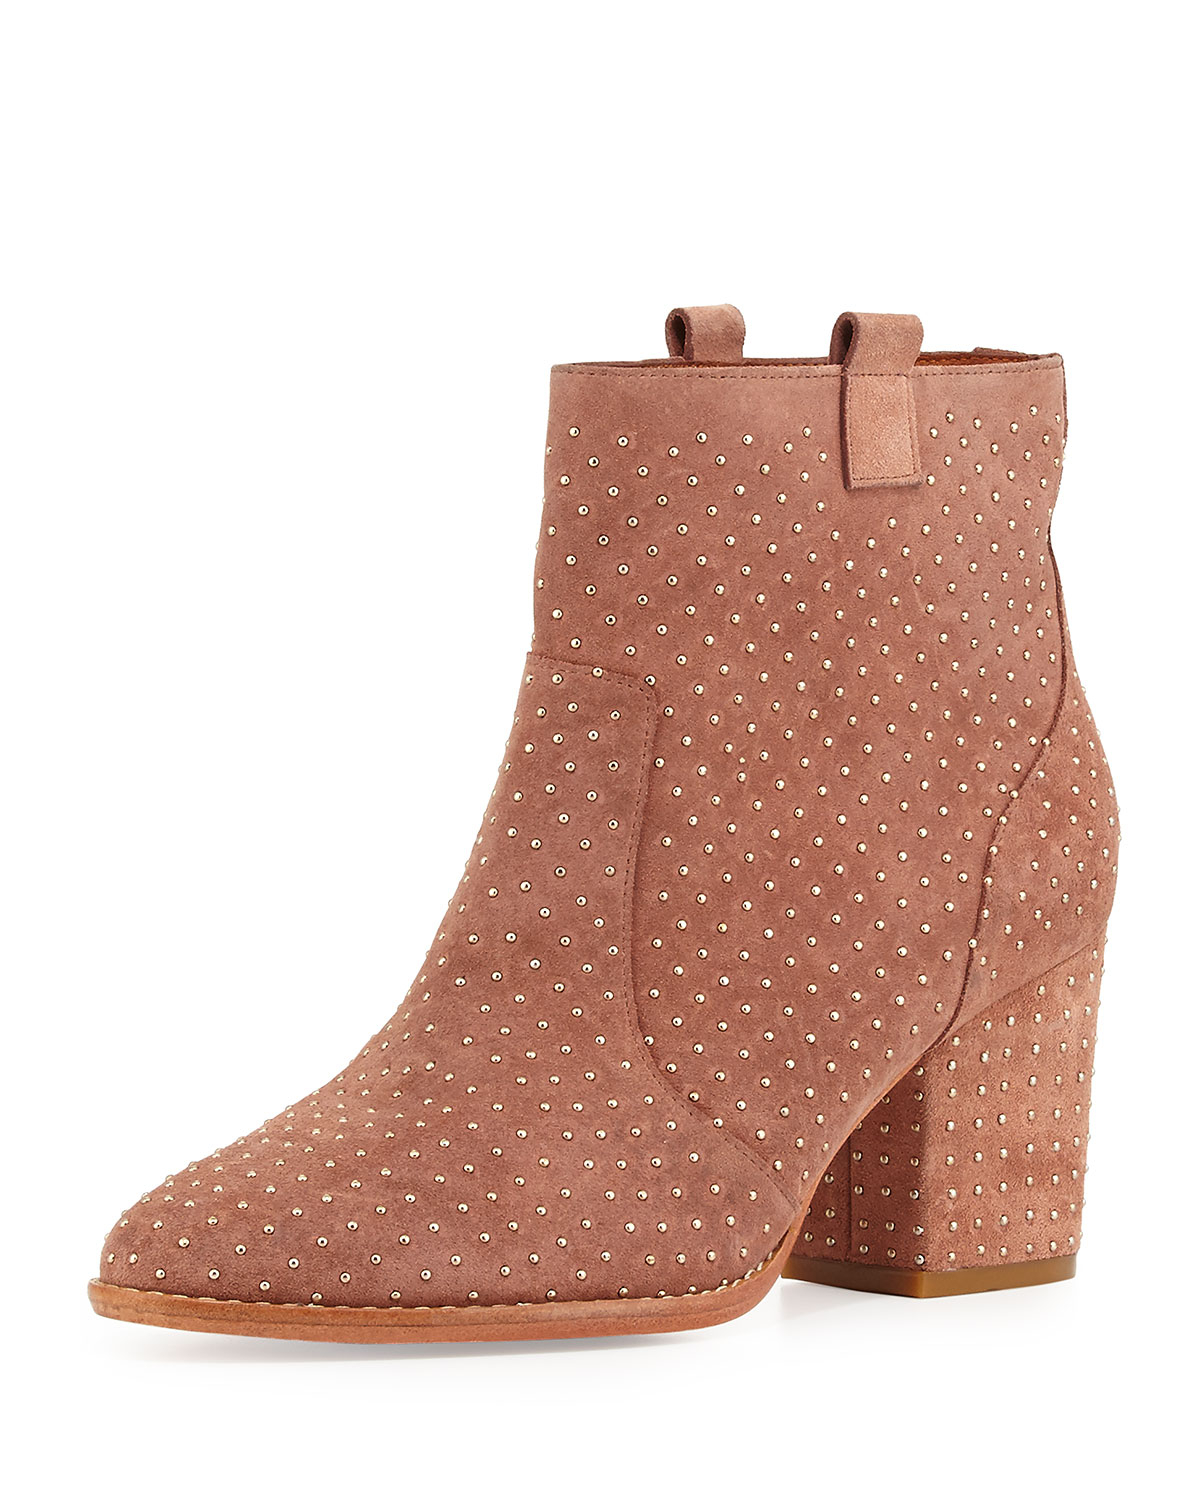 wide range of cheap online Rebecca Minkoff Studded Suede Ankle Boots sale countdown package Kh9vmHg